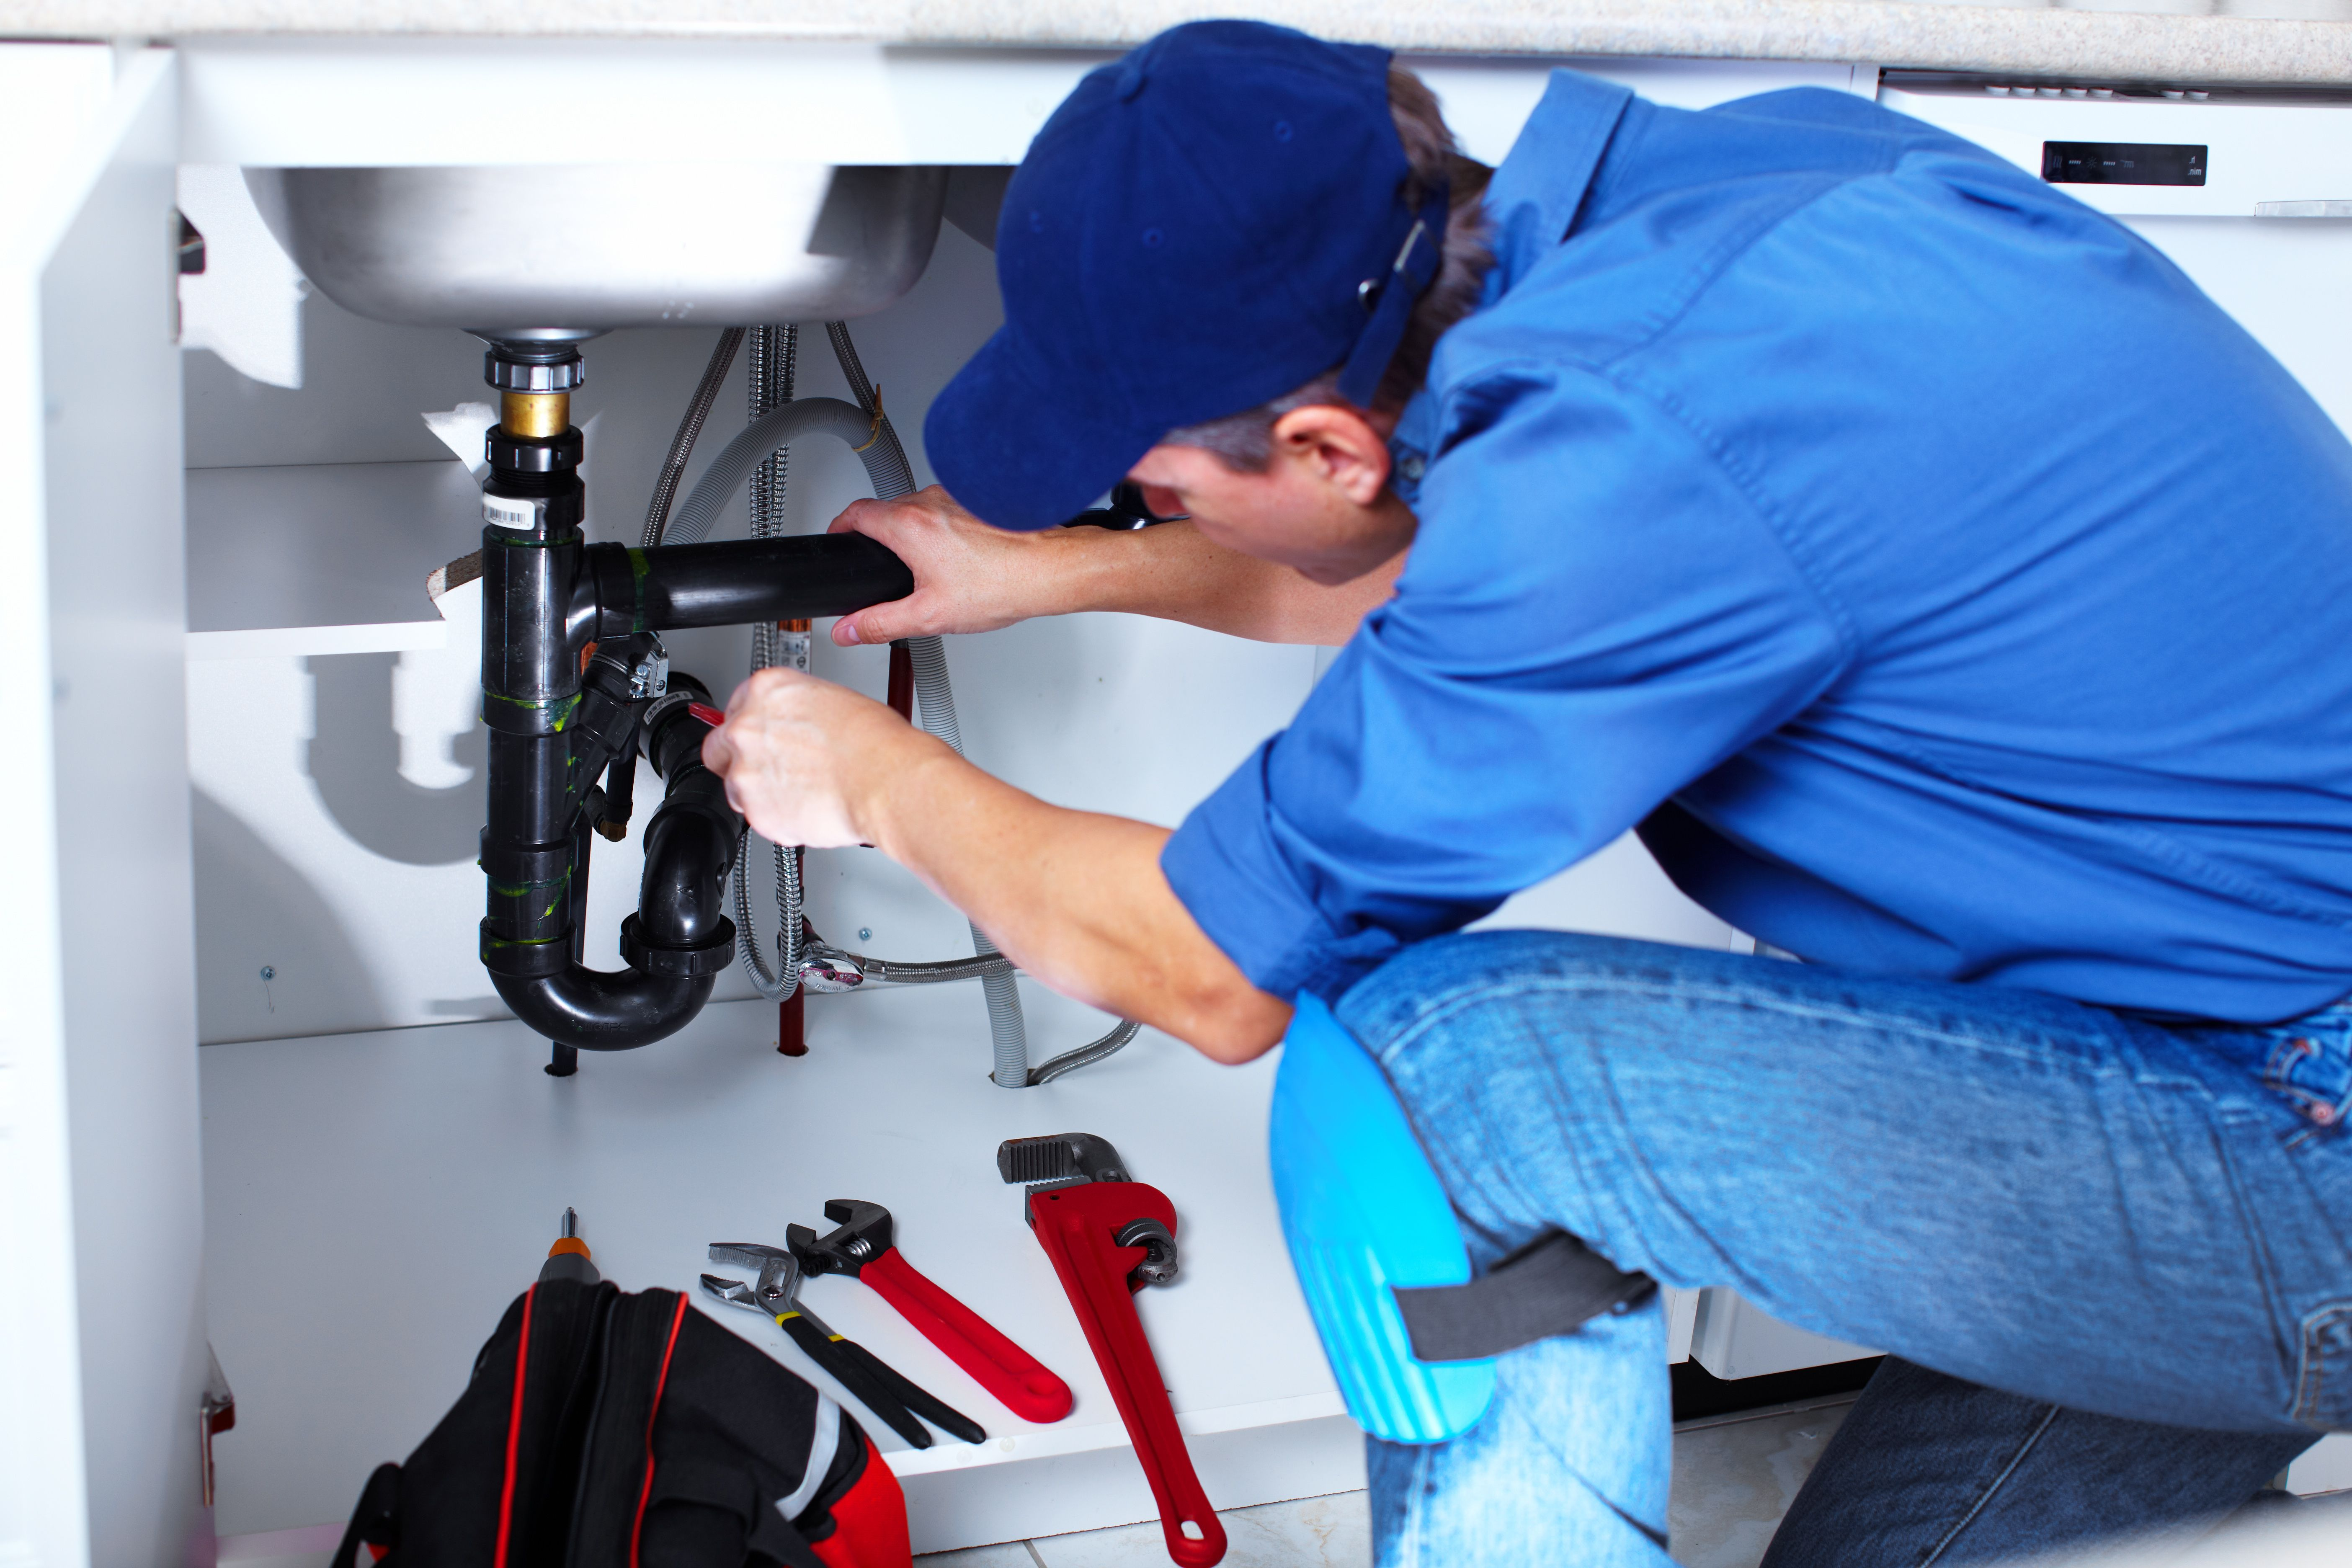 Plumbing CEU Schedule for 2020 Available Now!